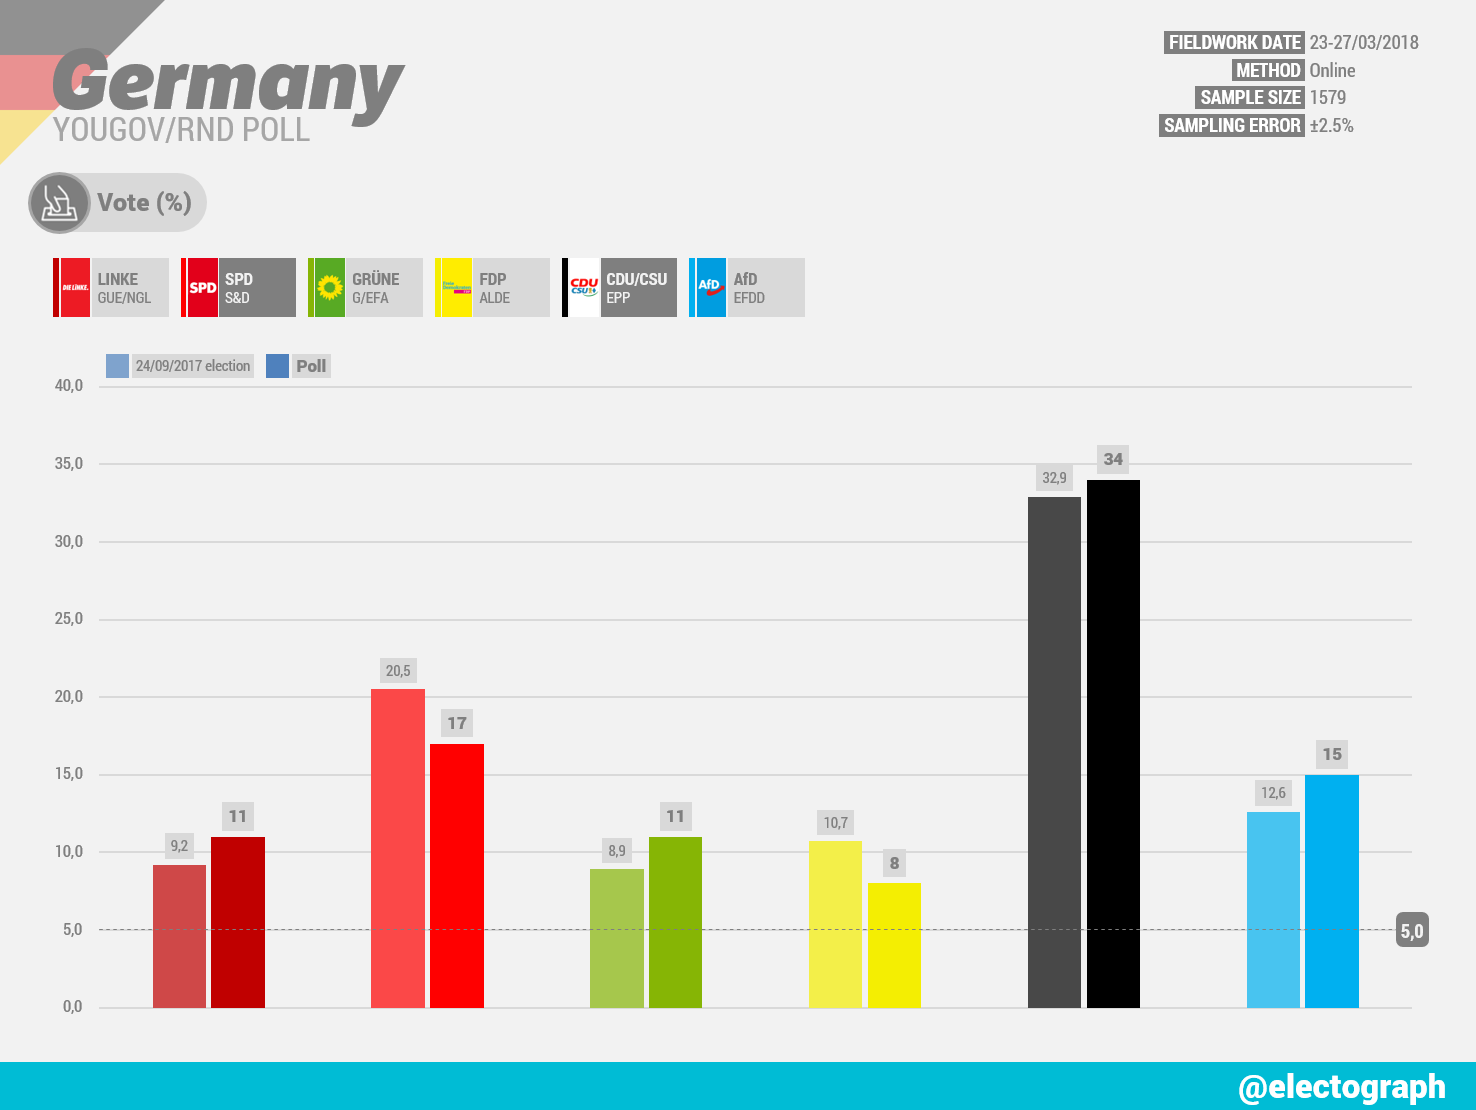 GERMANY YouGov poll chart for RND, March 2018